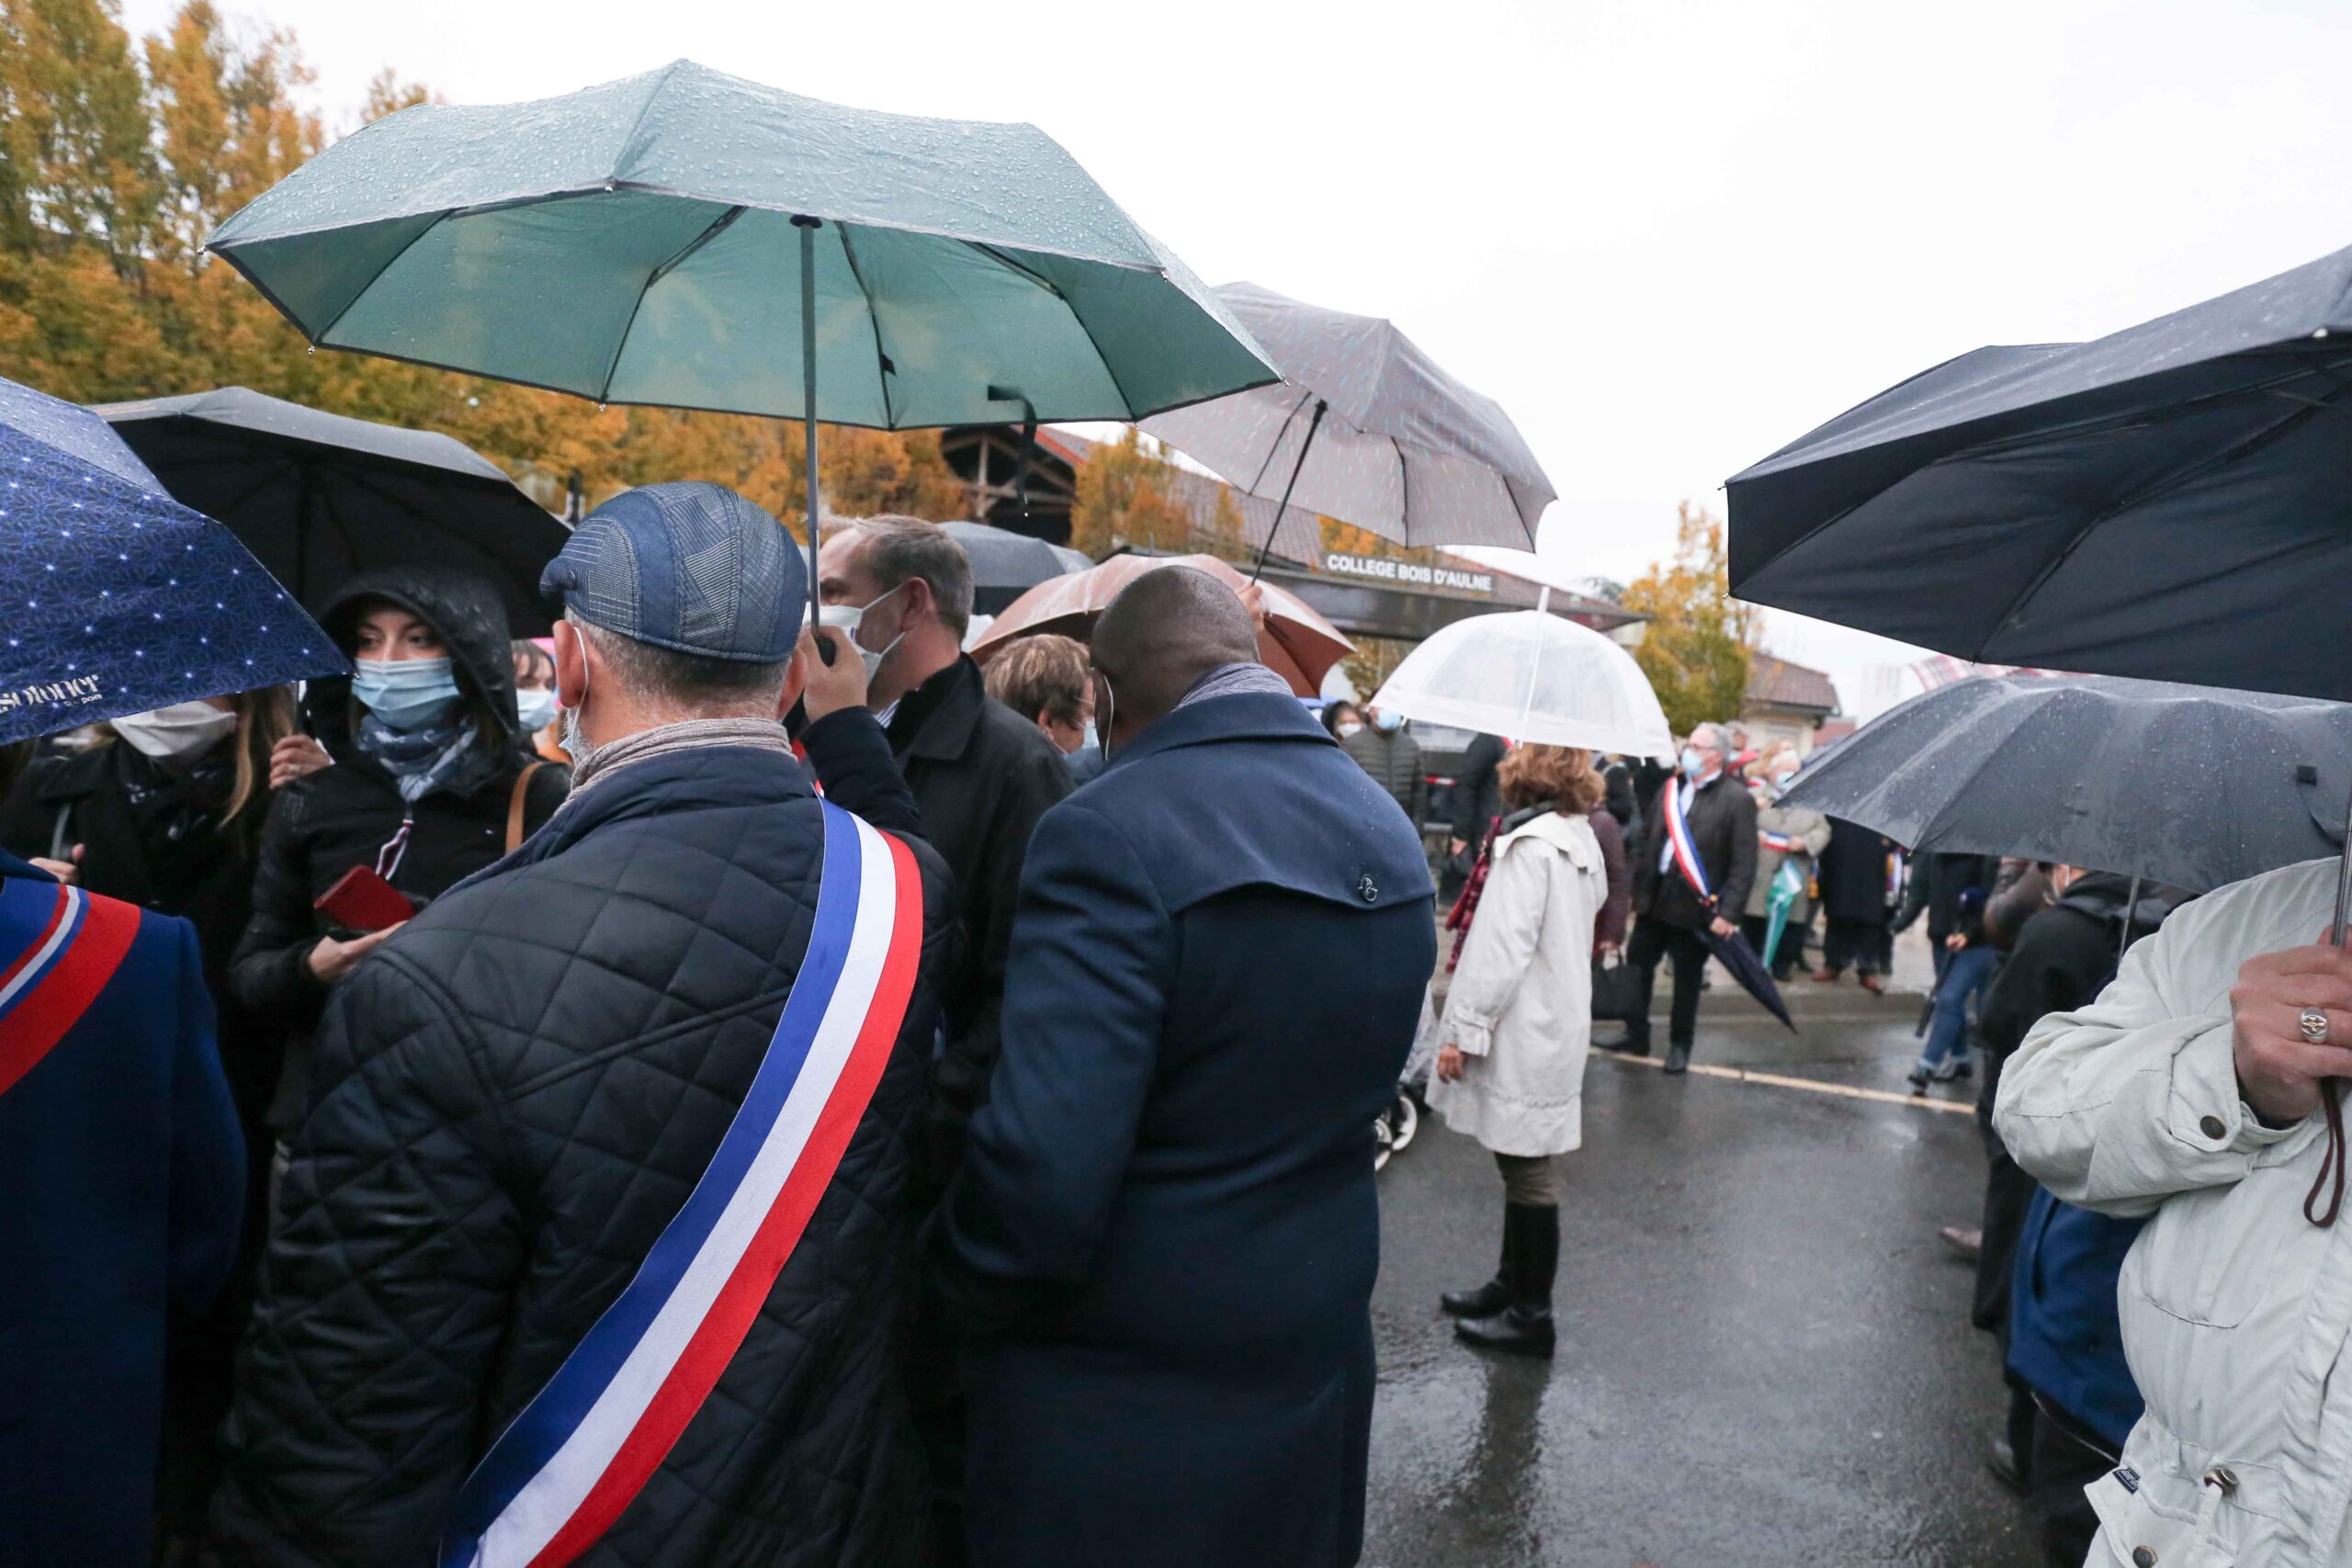 Elected representatives gather at the middle school in Conflans-Sainte-Honorine, northwest of Paris, on October 20, 2020 during the 'Marche Blanche' in solidarity after a teacher was beheaded for showing pupils cartoons of the Prophet Mohammed. His murder